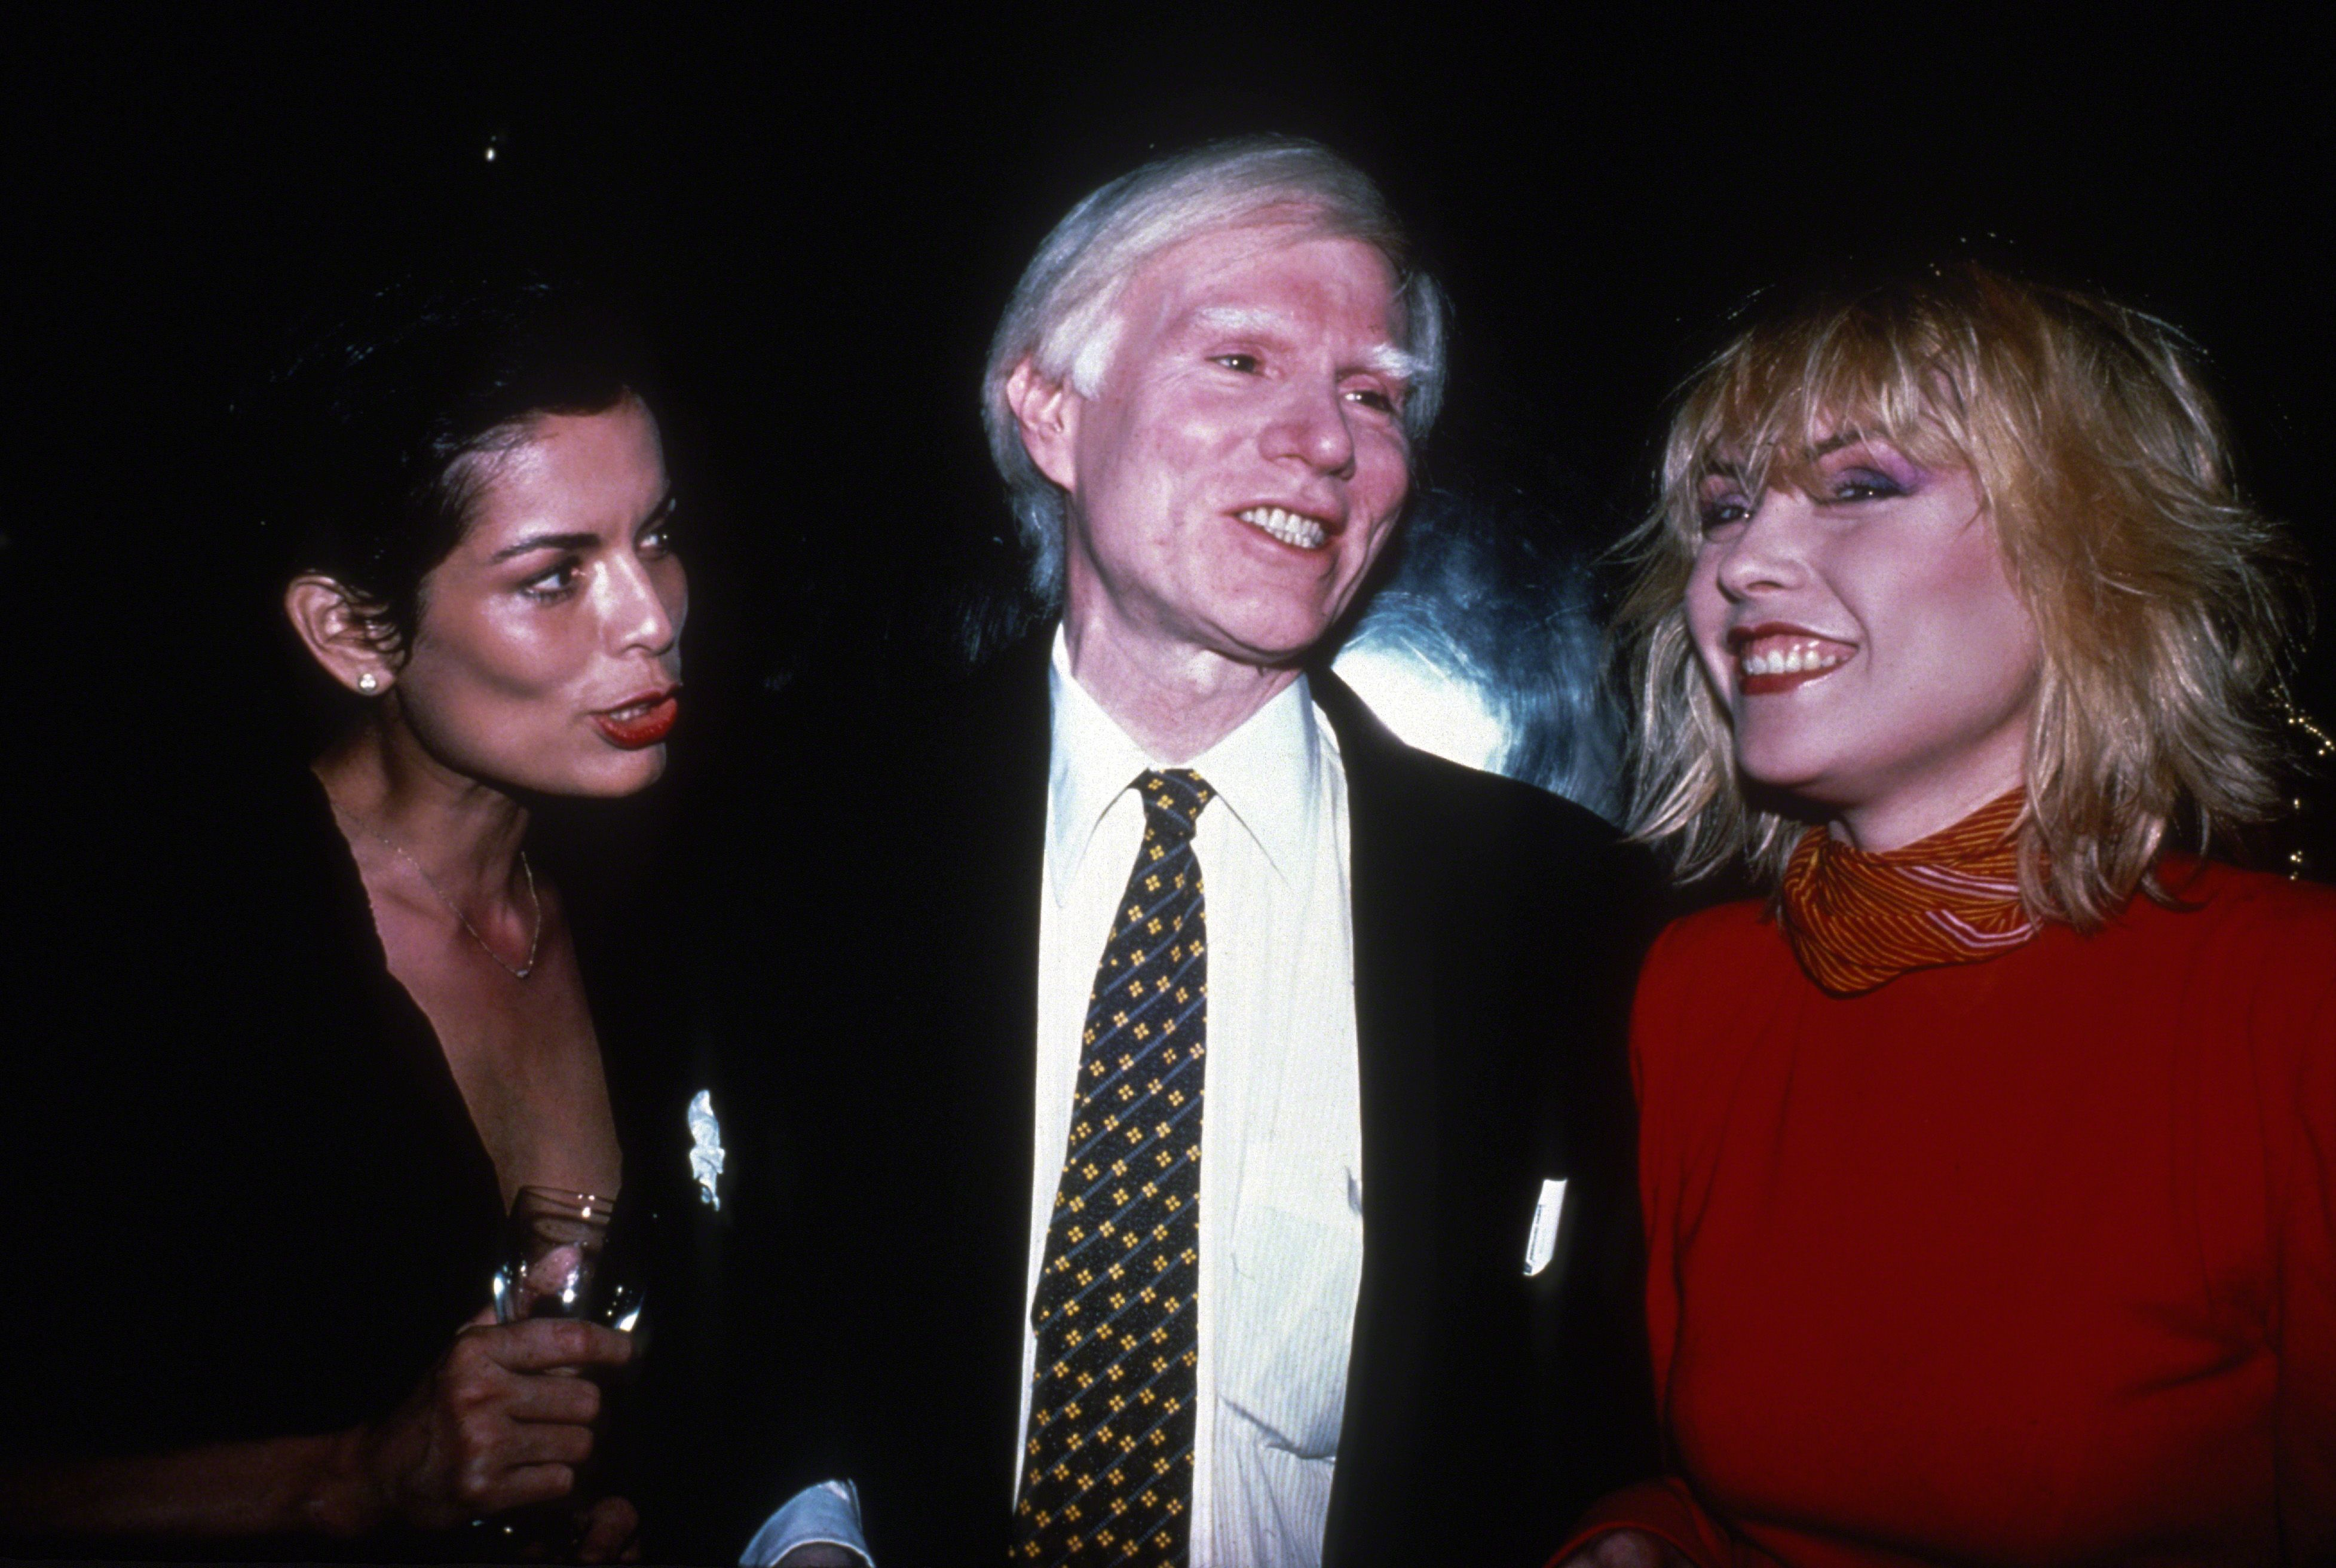 Andy Warhol Fans Have Two New Must-See Shows